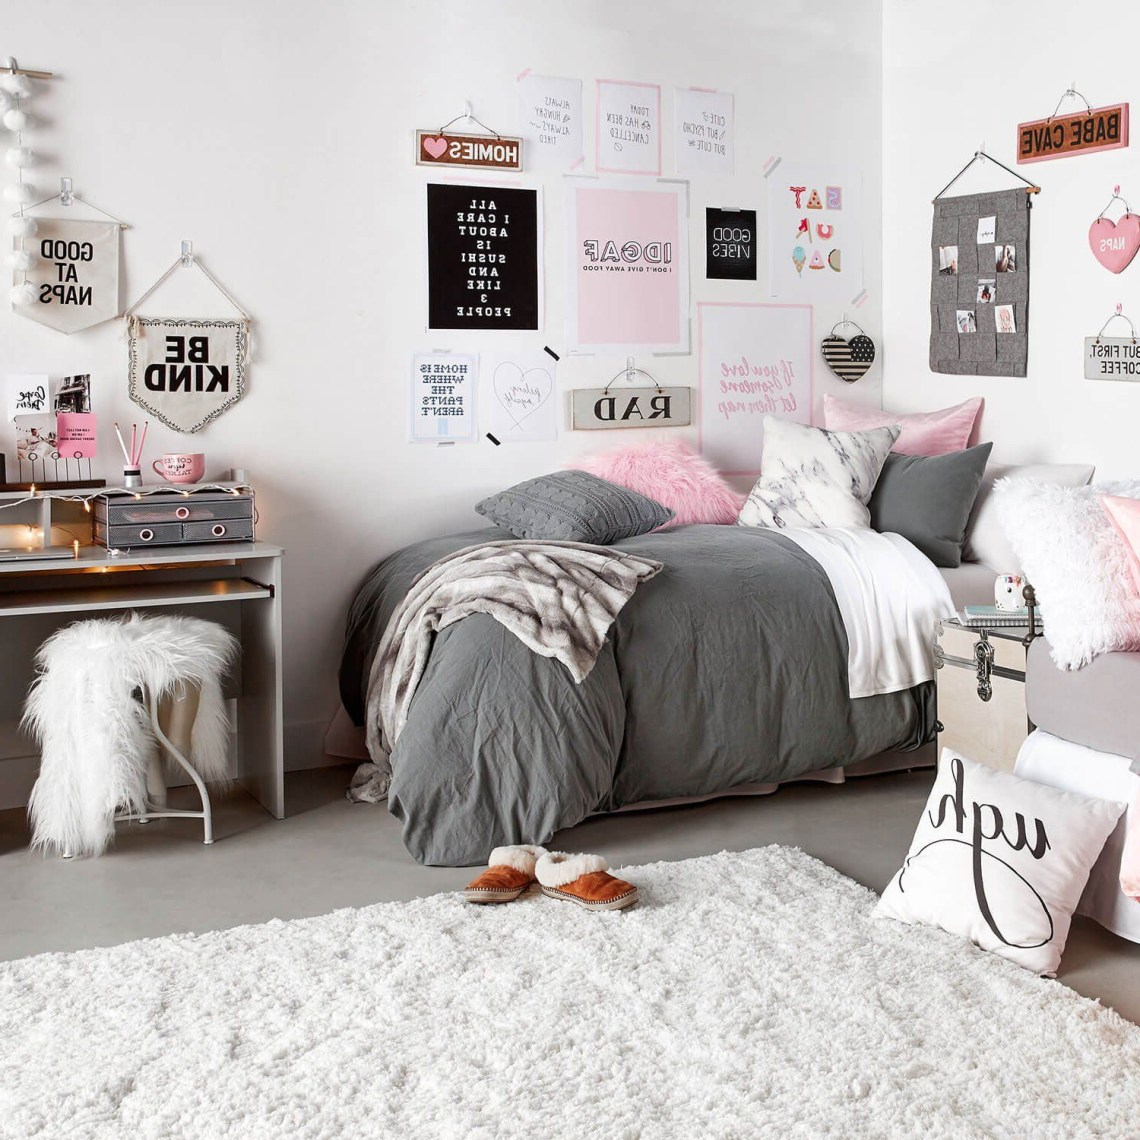 Classically Cozy Room Dorm Room Designs Dorm Design